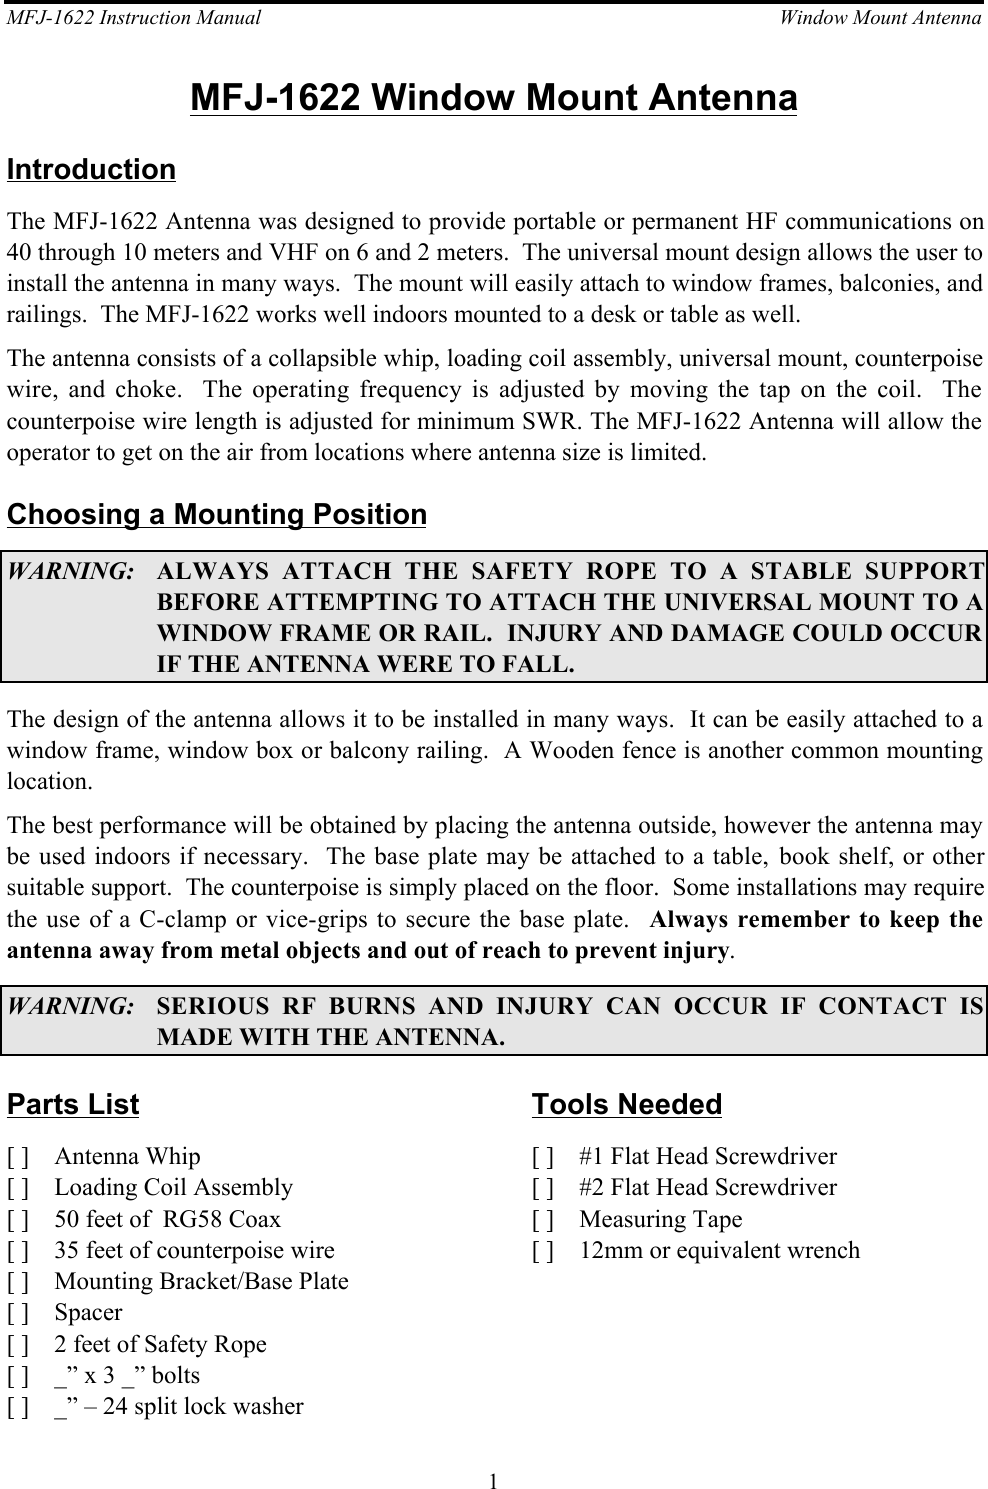 Mfj 1622 Whip Antenna Operating At Medium Wave Frequency Mfj16221703149584 User Guide Page 1